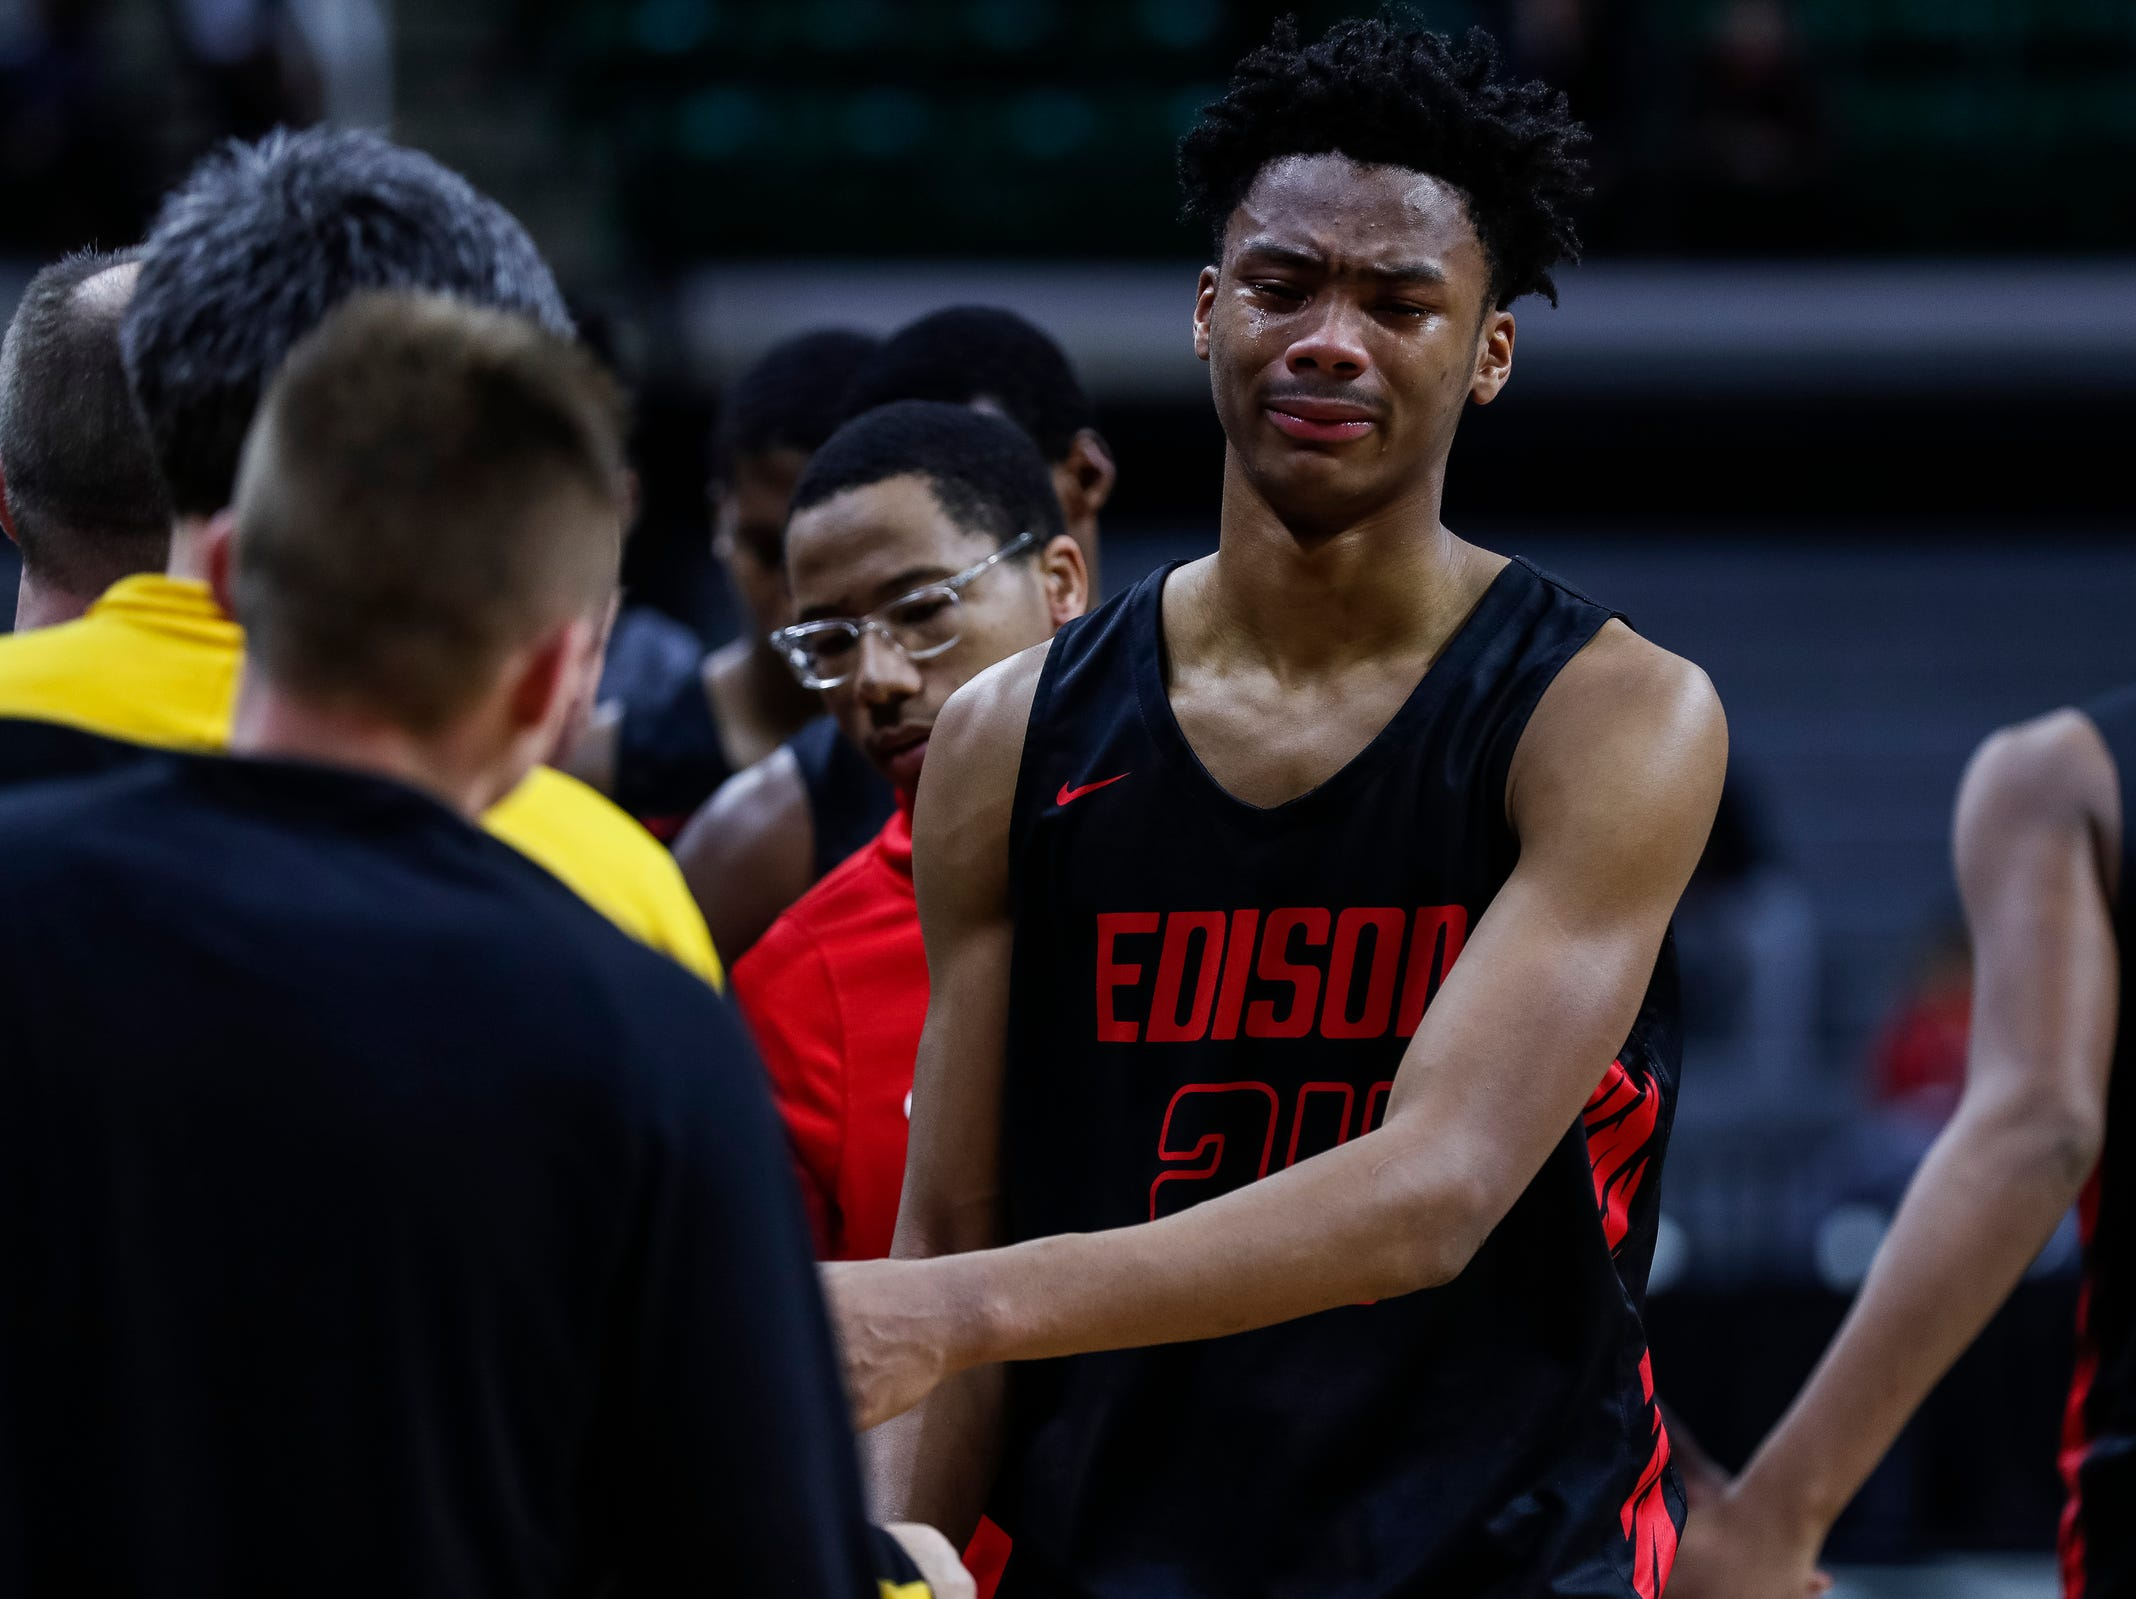 Detroit Edison's Dylan Bell (24) reacts to losing to Iron Mountain, 60-57, in the MHSAA Division 3 semifinal at Breslin Center in East Lansing on Thursday, March 14, 2019.